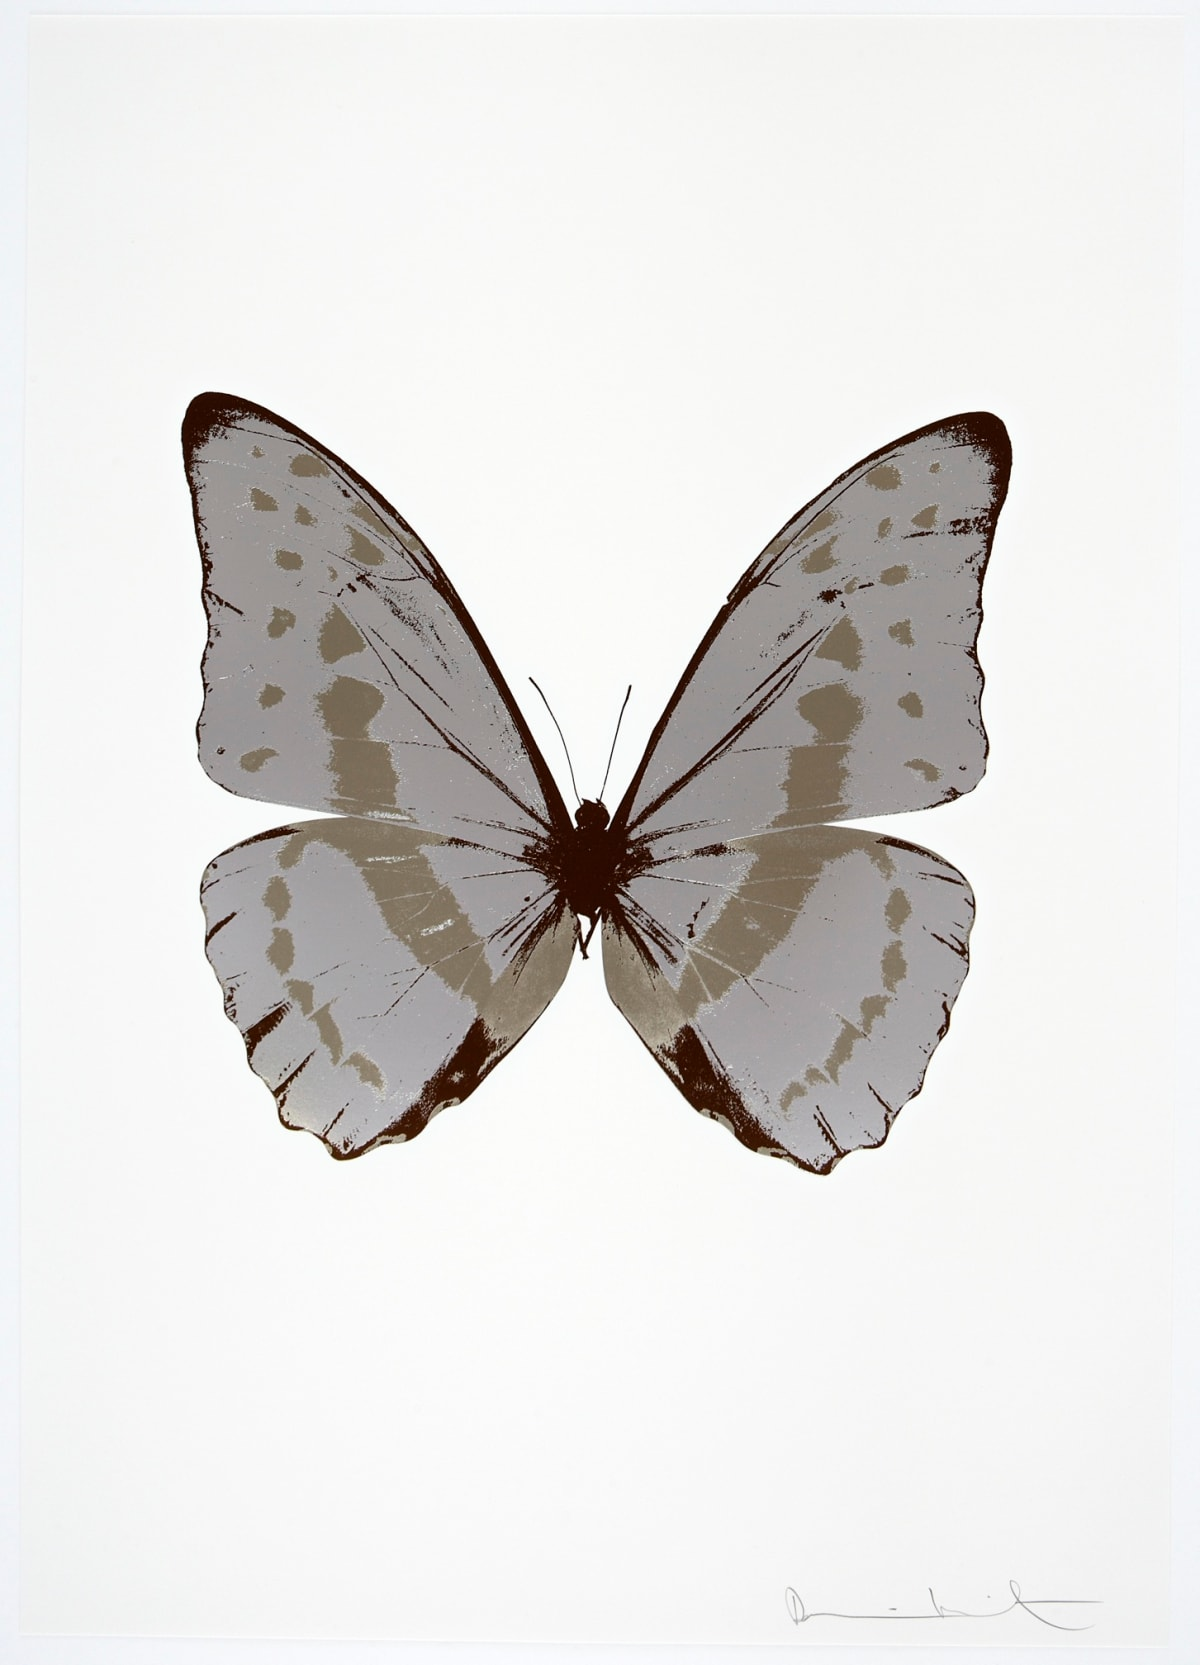 Damien Hirst The Souls III - Silver Gloss/Smoke/Chocolate, 2010 3 colour foil block on 300gsm Arches 88 archival paper. Signed and numbered. Published by Paul Stolper and Other Criteria 72 x 51cm OC7920 / 660-23 Edition of 15